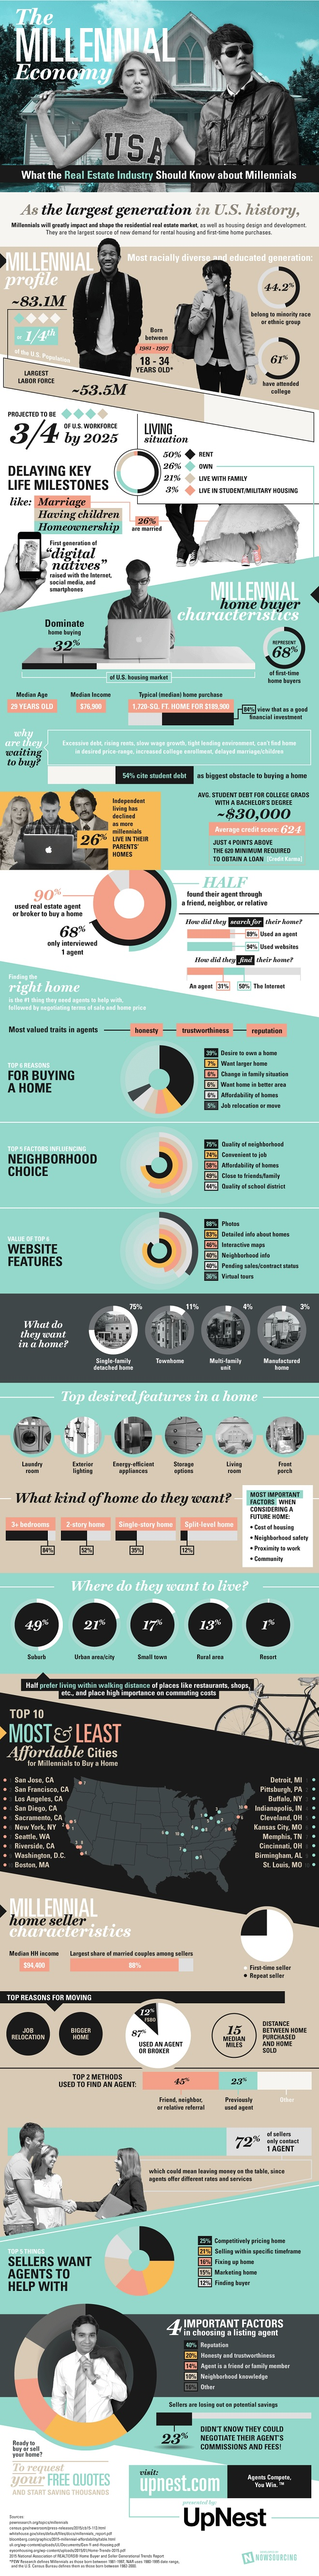 What The Real Estate Industry Should Know About Millenials Infographic